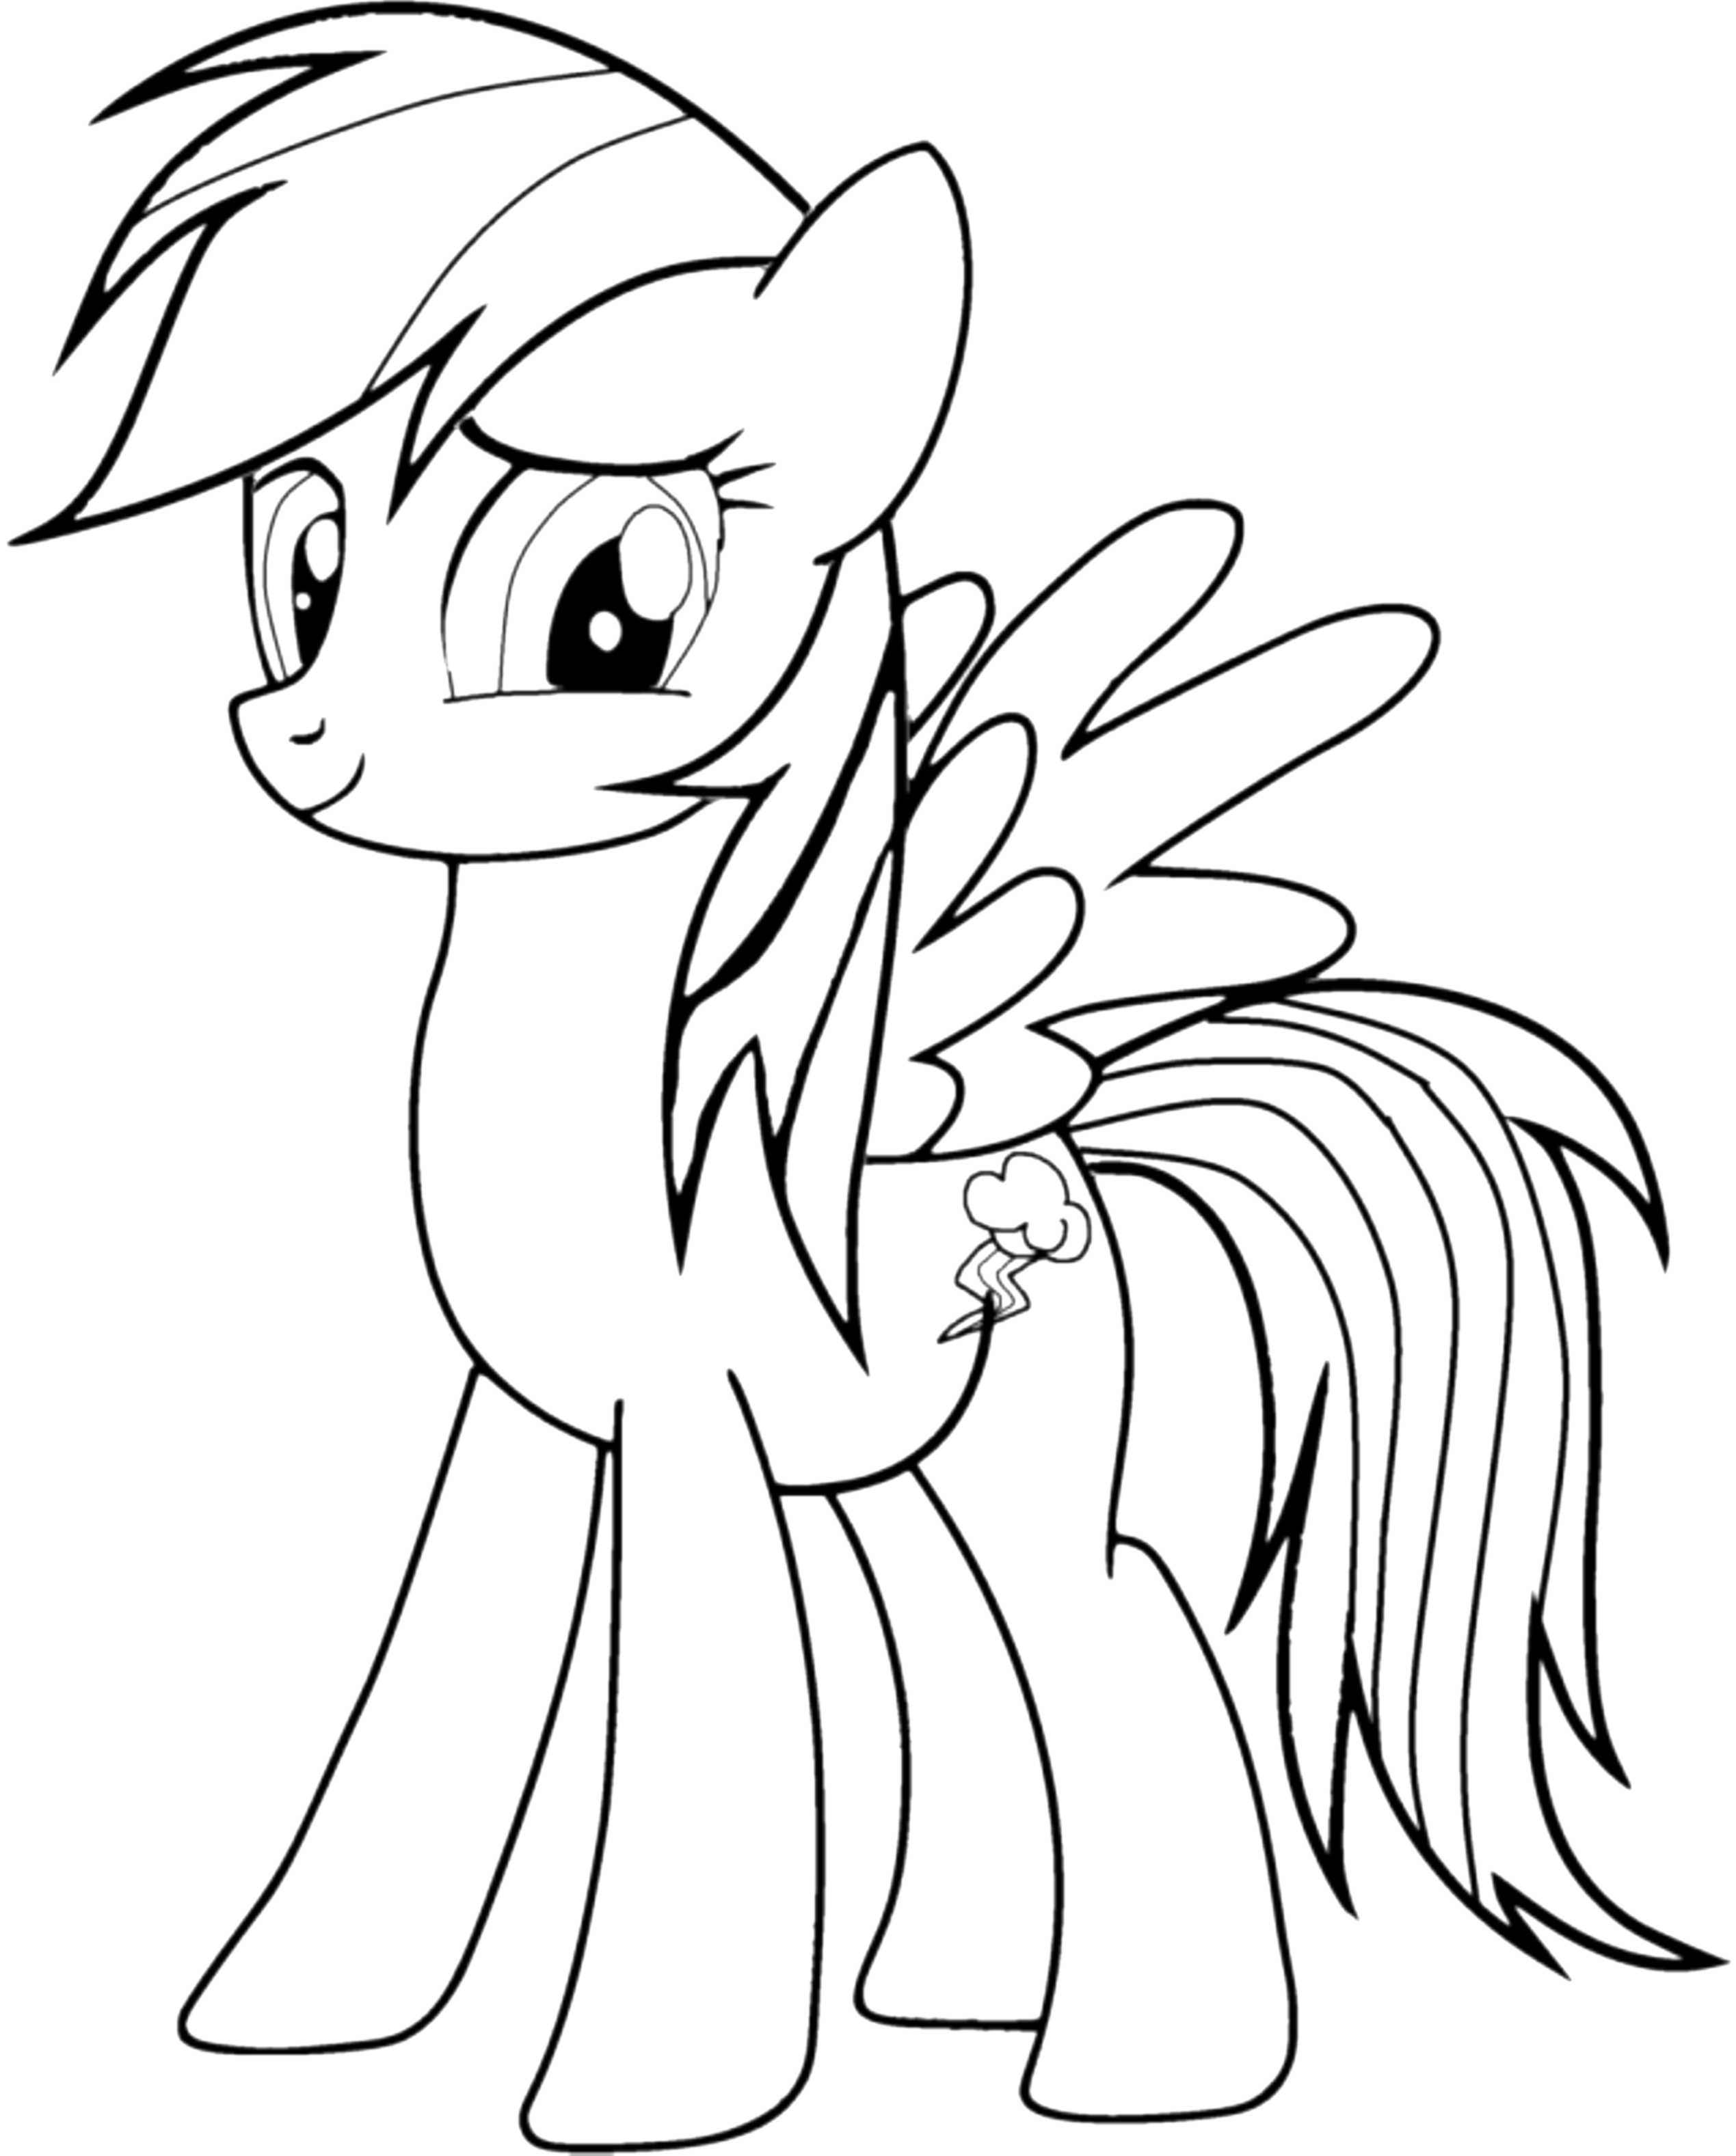 Rainbow dash coloring pages best coloring pages for kids for Coloring pages